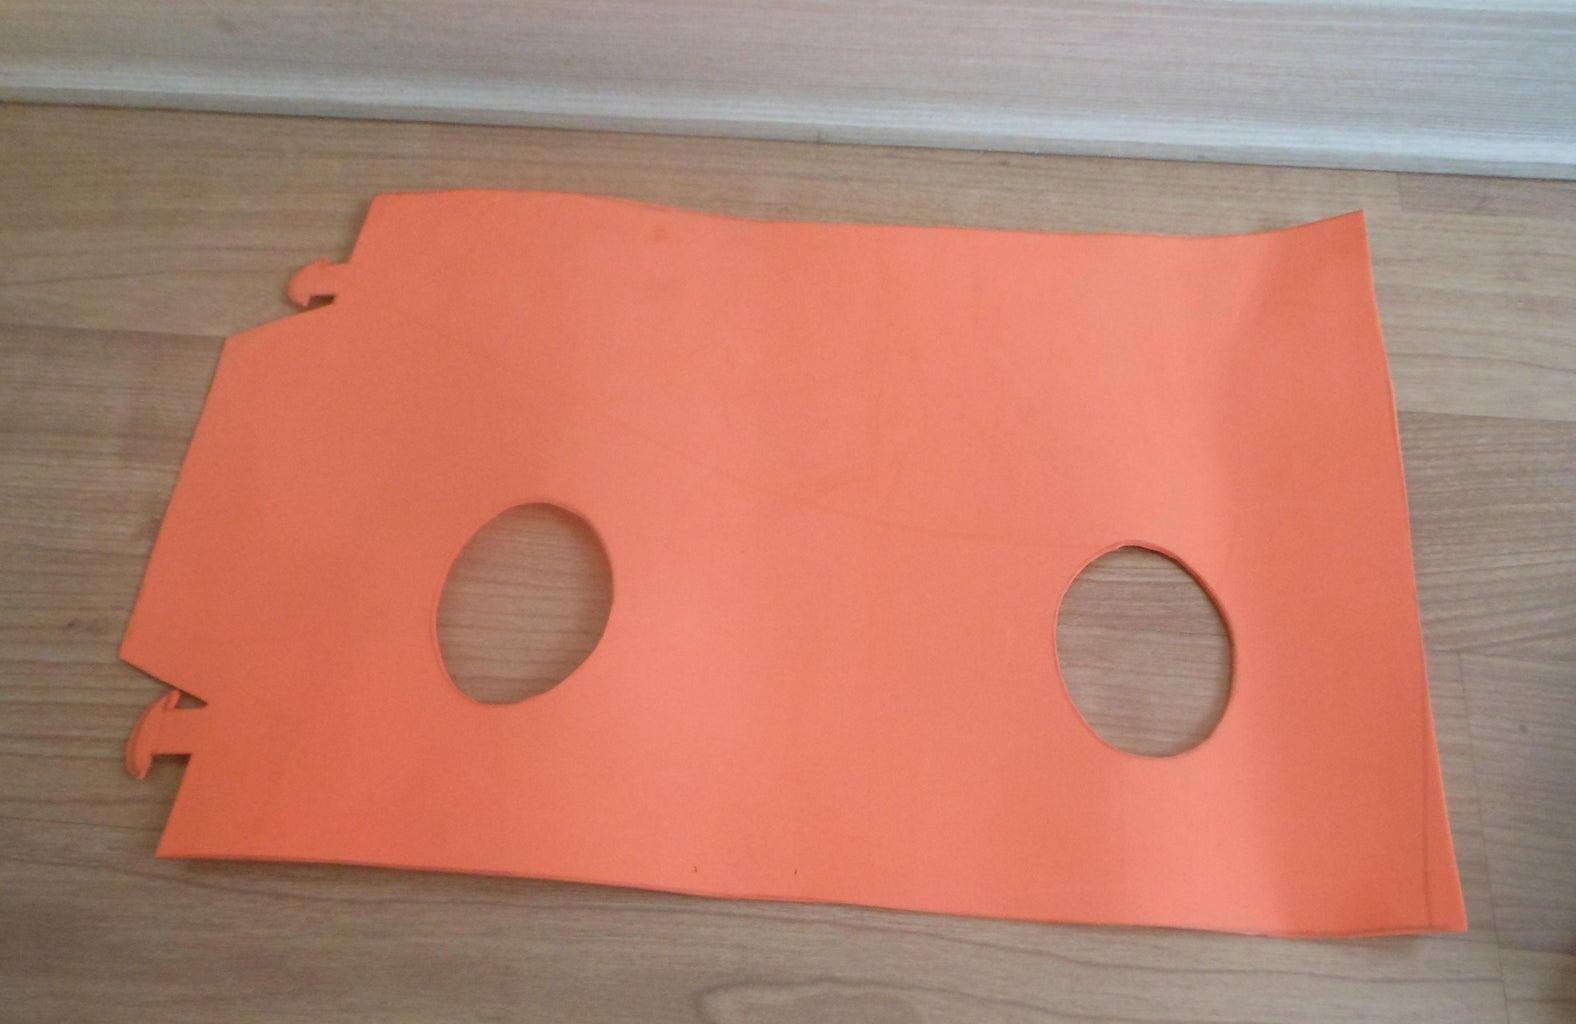 Draw the Sample on the Foam and Cut Like the Picture.